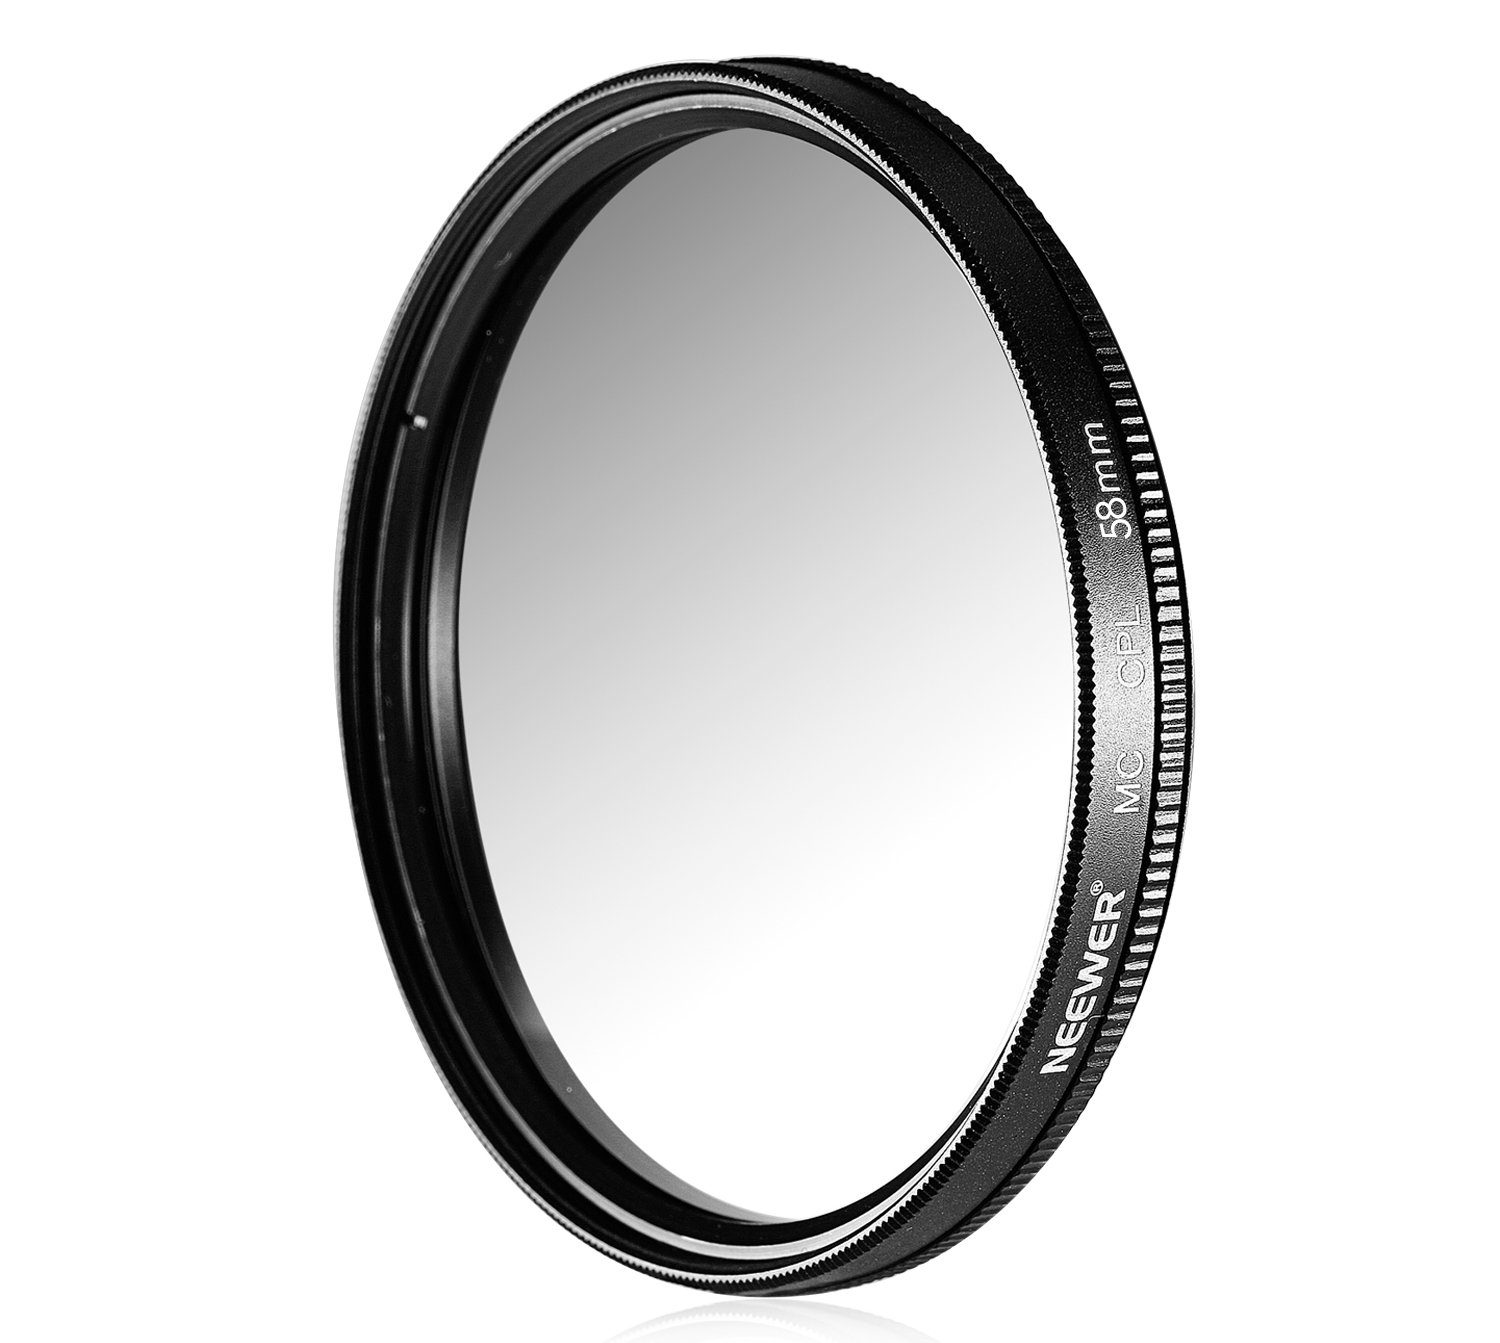 Neewer 77MM CPL Circular Polarizer Filter Multi-Coated for Camera Lens with a 77mm Filter Thread